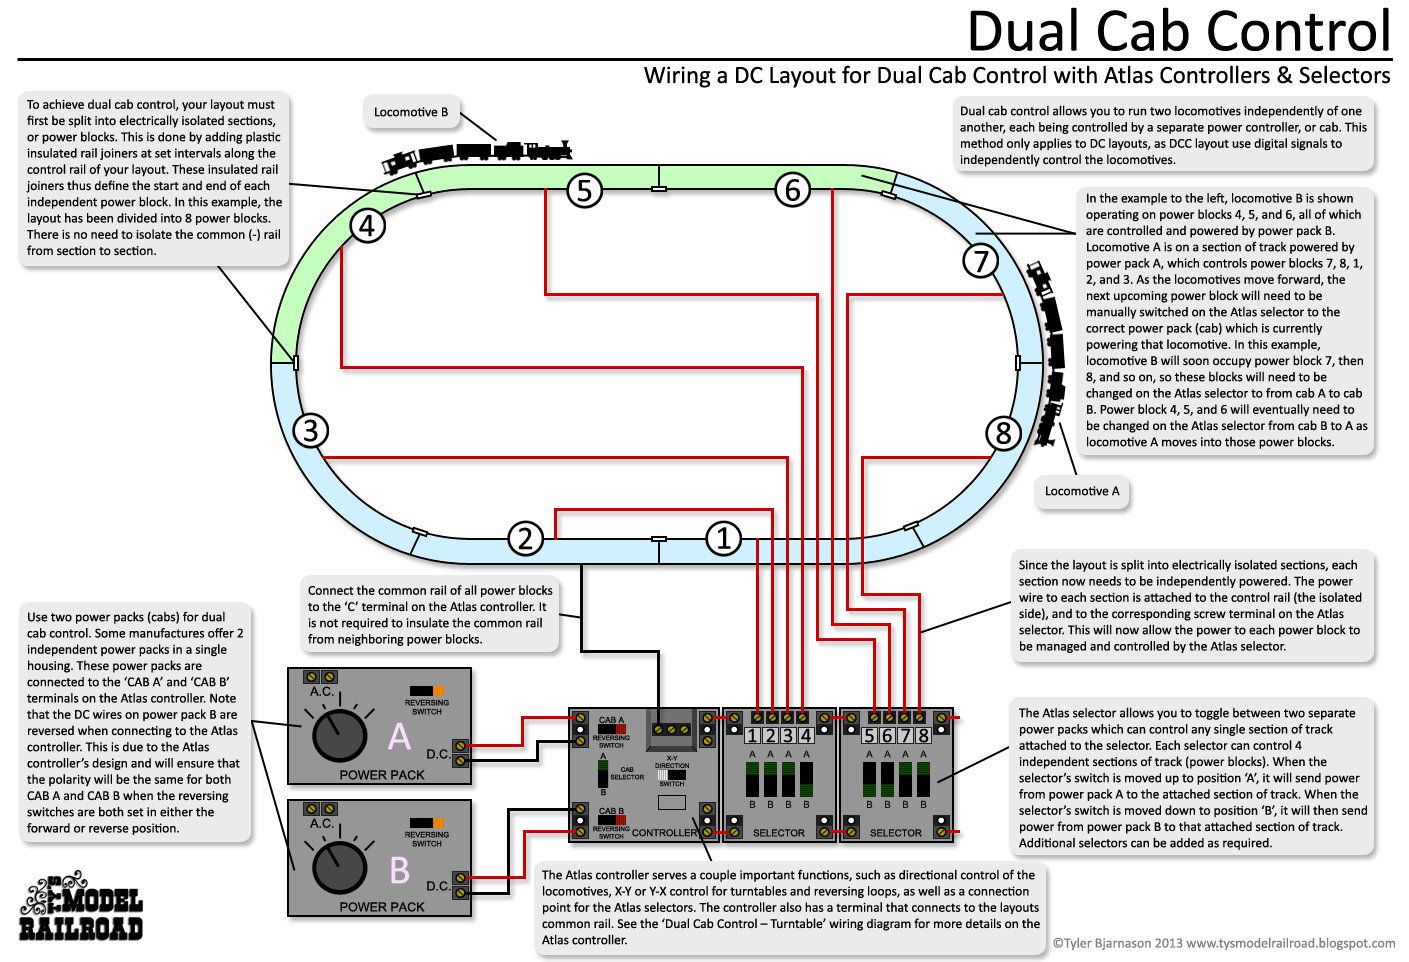 ty s model railroad wiring diagrams rh tysmodelrailroad blogspot com